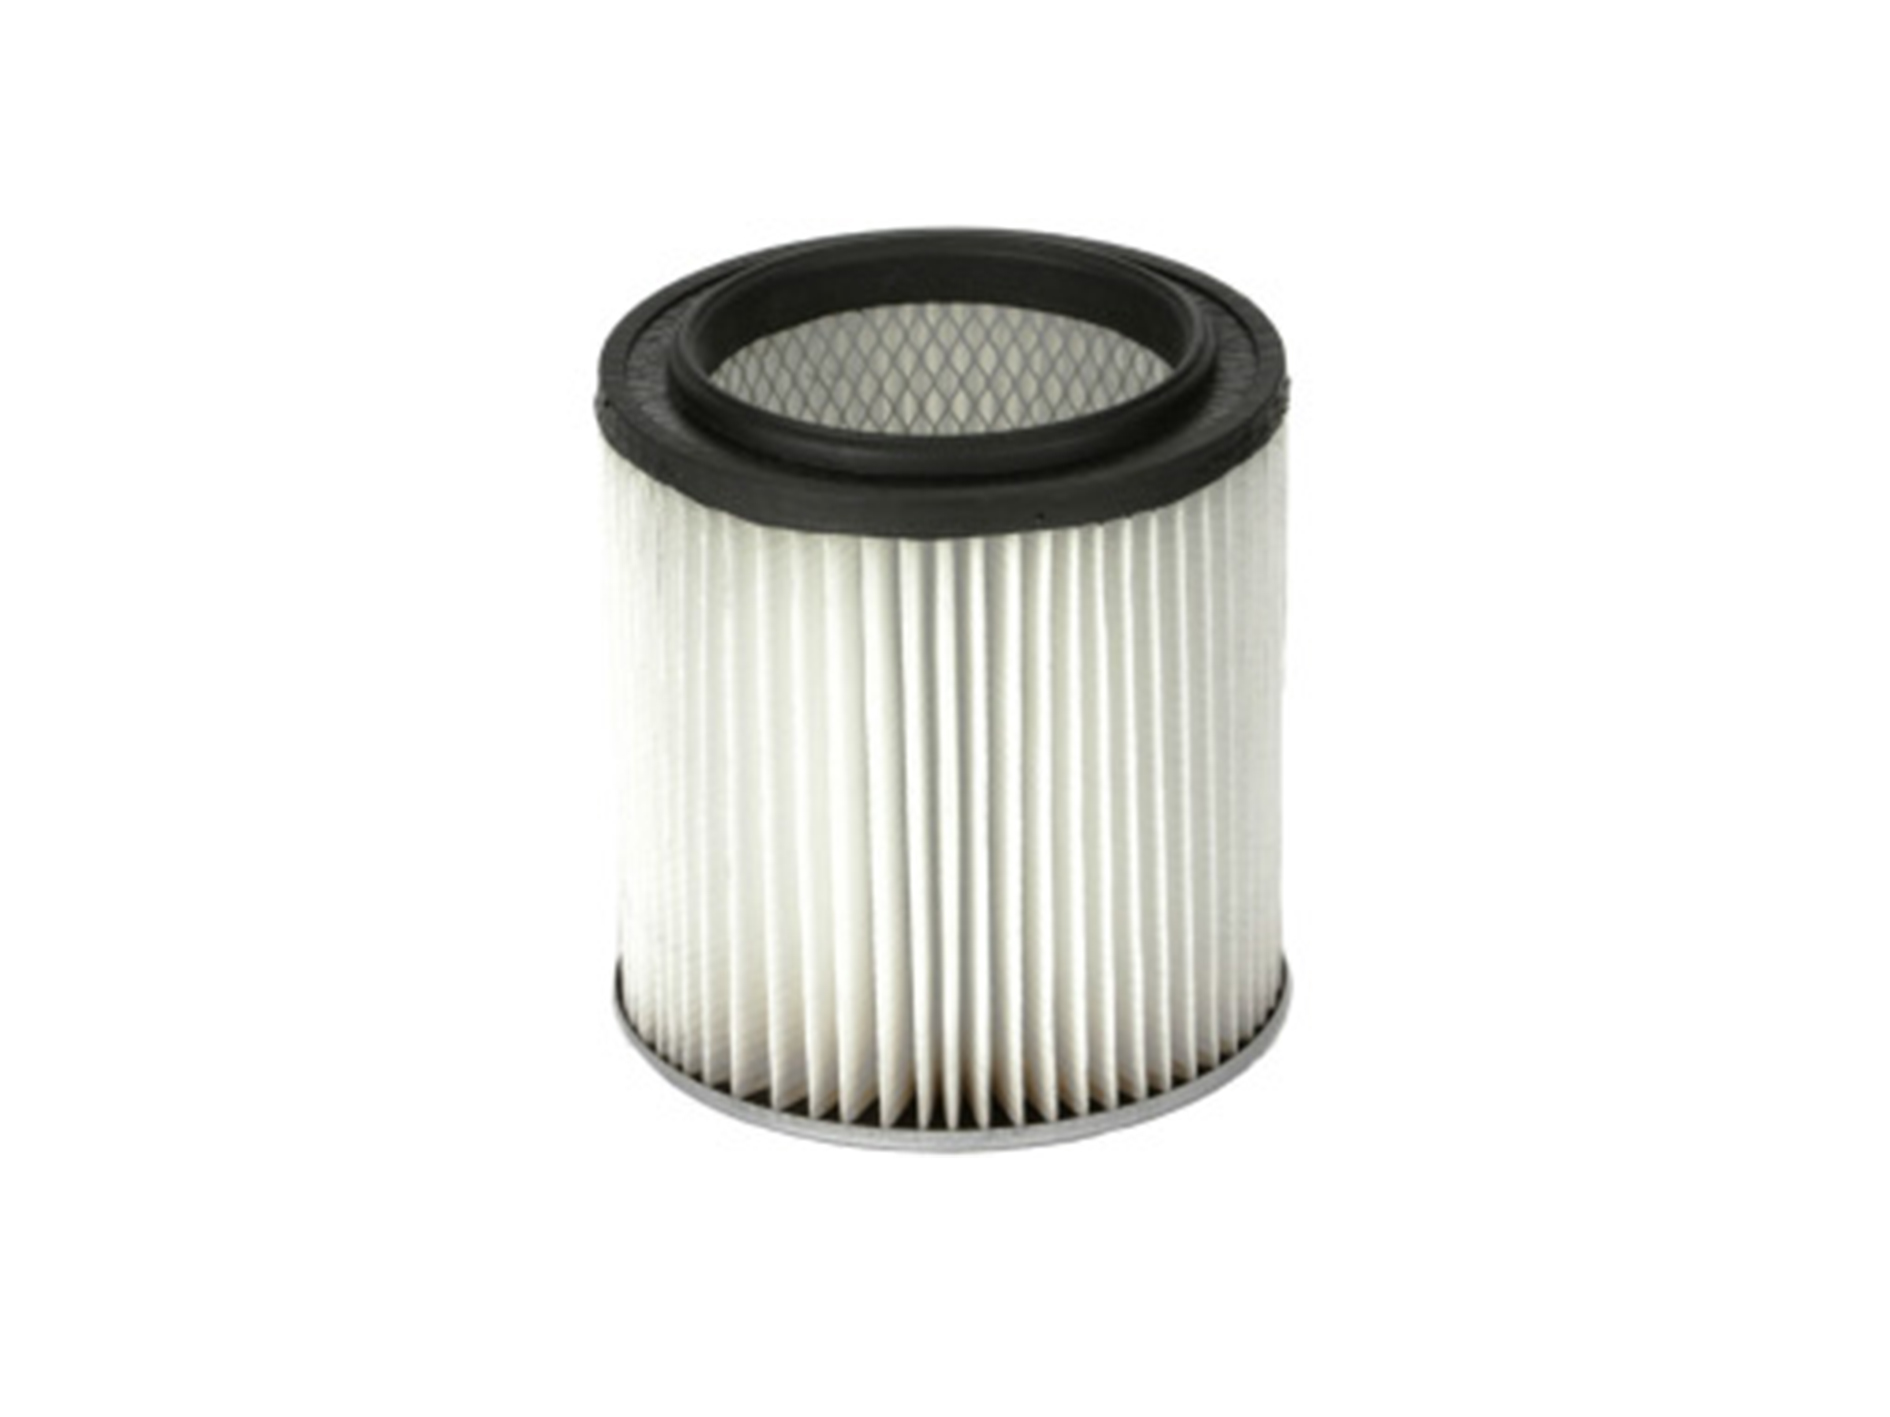 Hoover Giii Central Vacuum Filter Cardy Vacuum